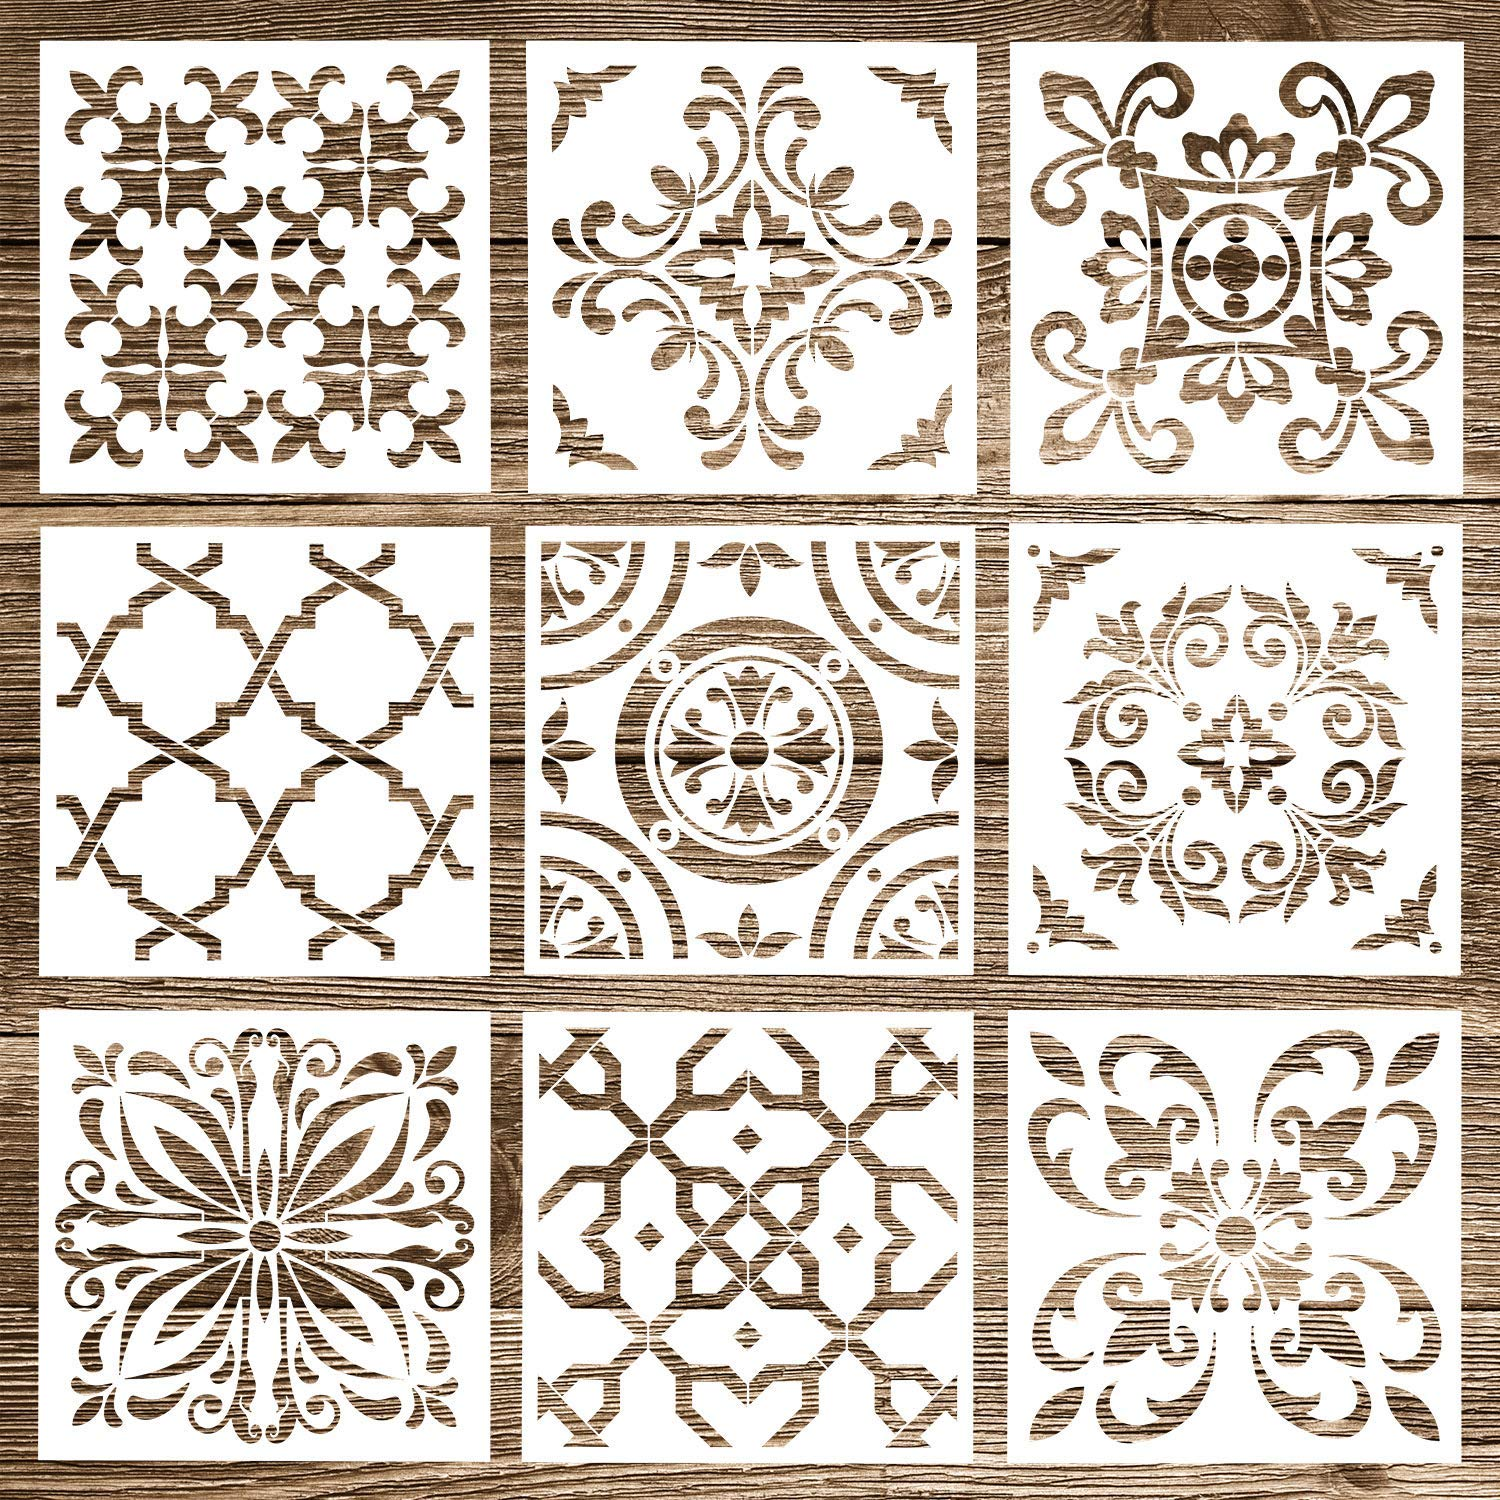 Whaline 9 Pack Mandala Stencils Tiles Template Set Reusable Stencils Mandala Dotting Painting Stencils Tool for Airbrush, Furniture Floor Tiles, Walls Art and Stone Rock, Home Painting